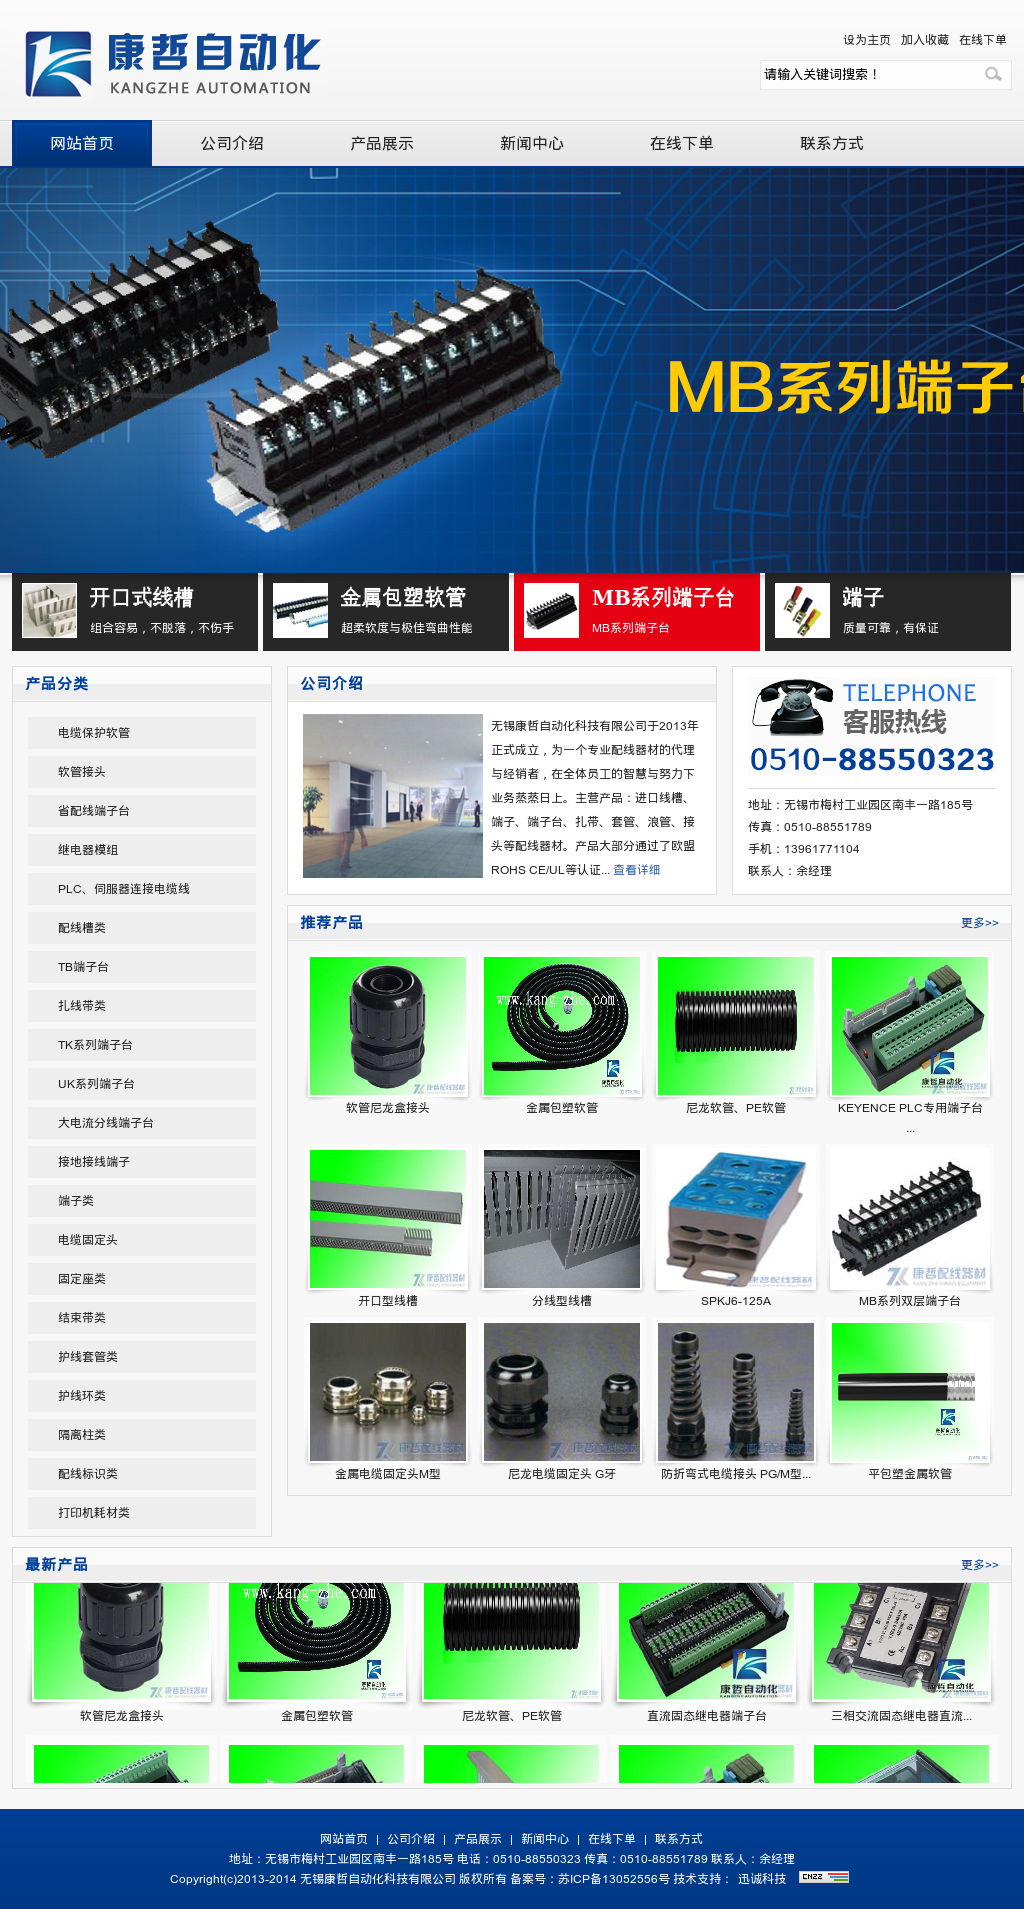 Wi Xi Kangzhe Wiring Accessories Competitors Revenue And Employees Website History